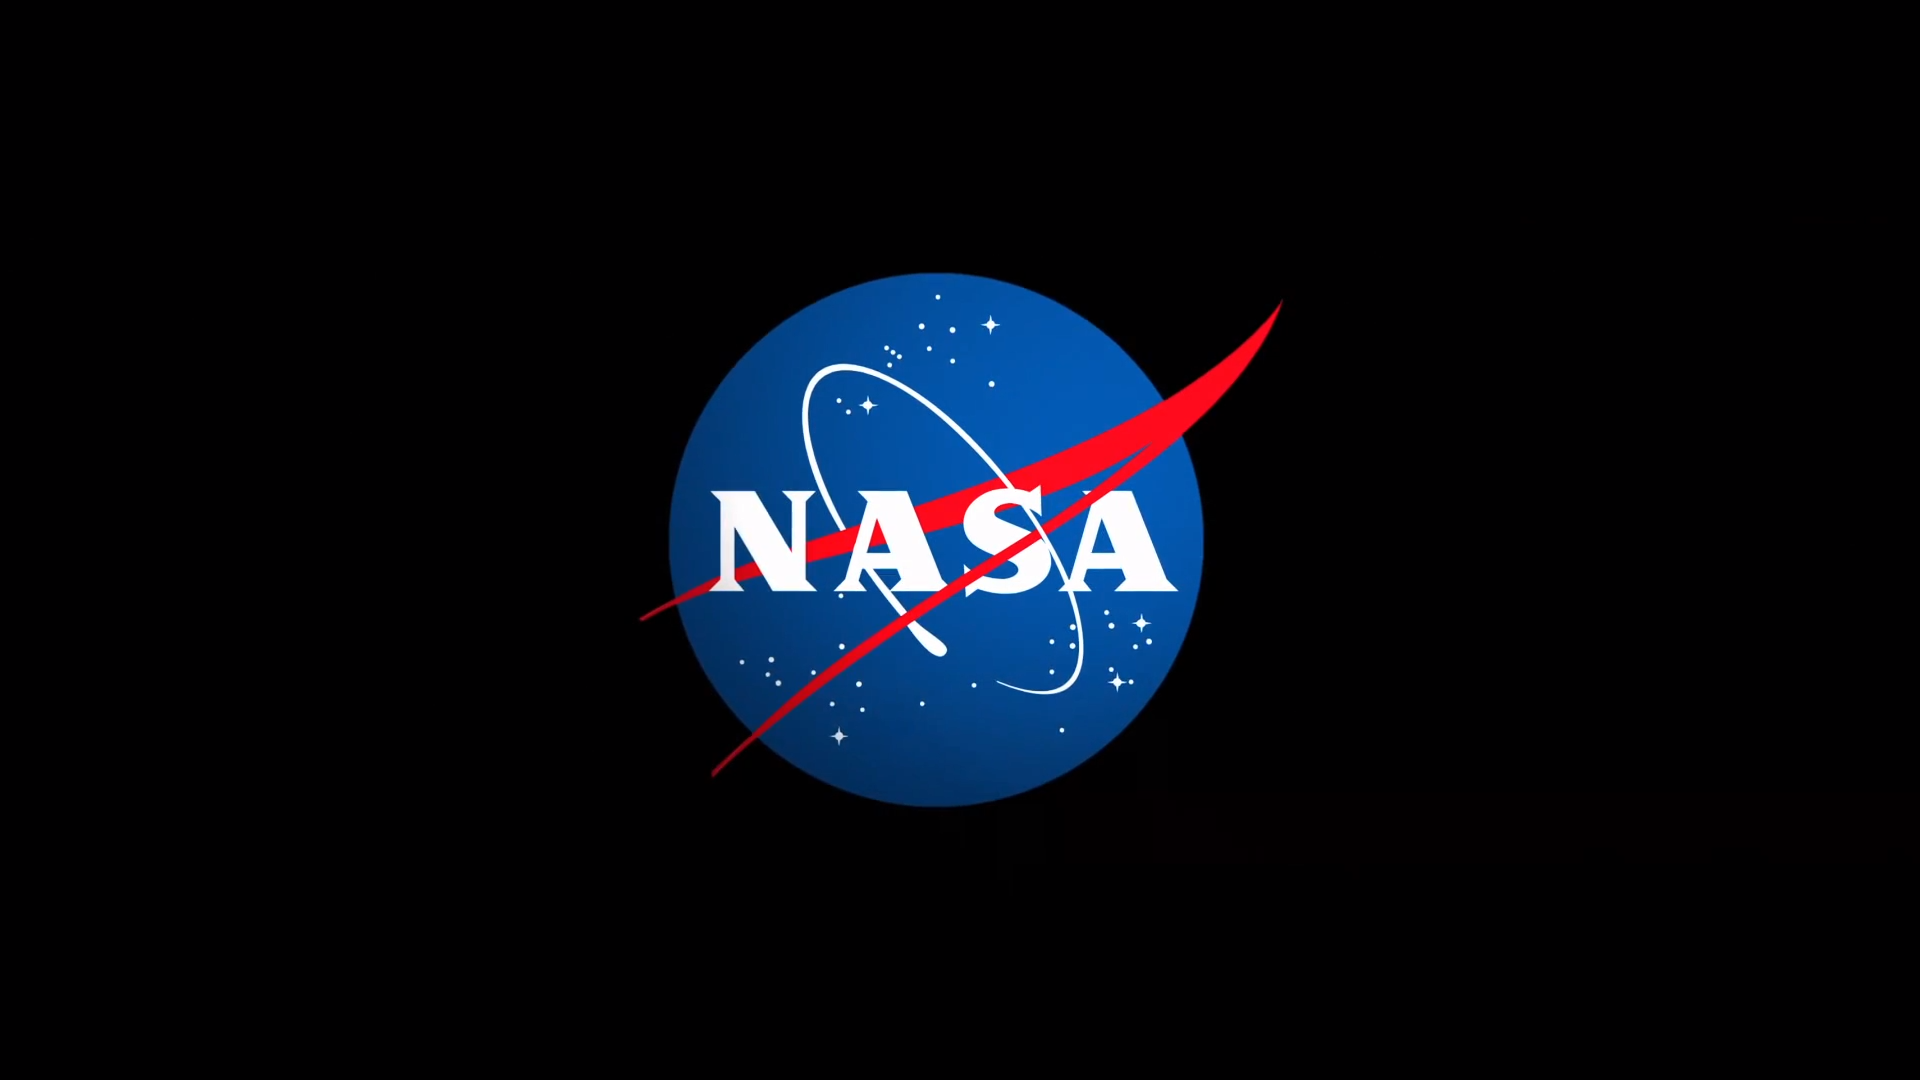 nasa hd wallpaper nasa hd wallpaper gallery 1920x1080